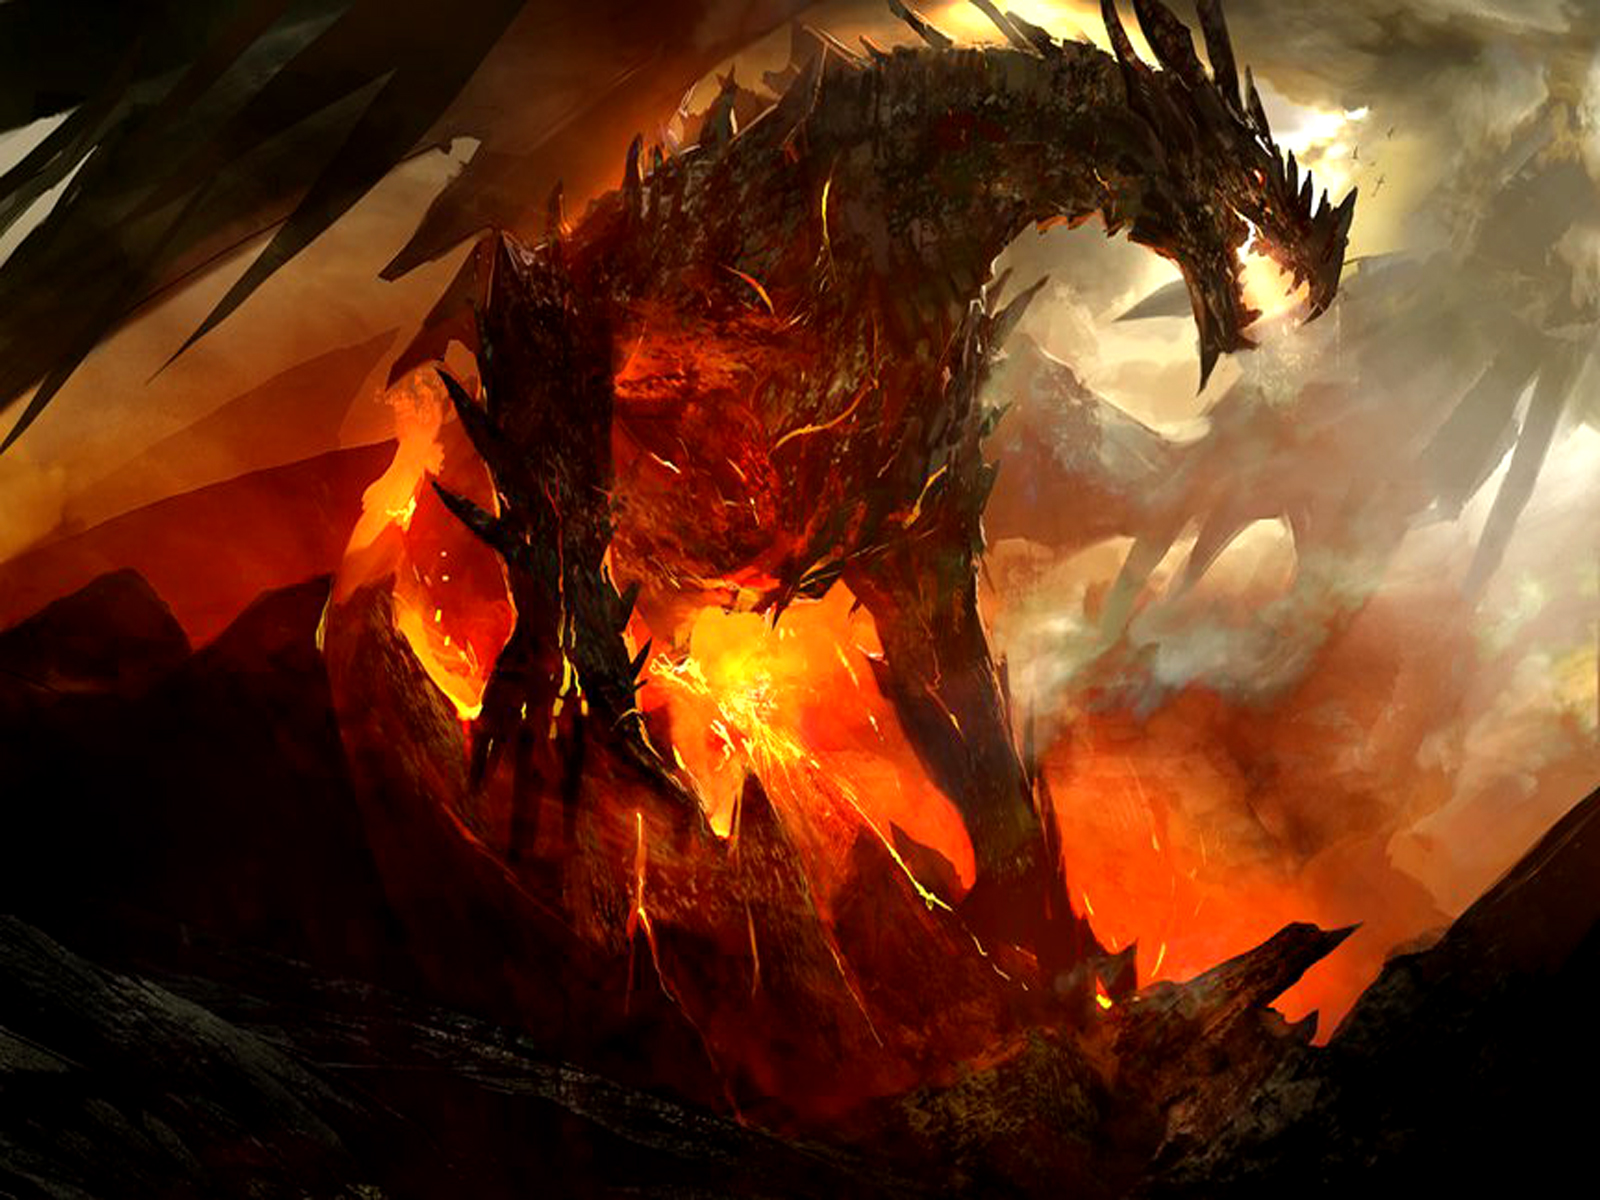 Hd wallpaper dragon - Dragon Hd Wallpapers Dragon Pictures Cool Wallpapers